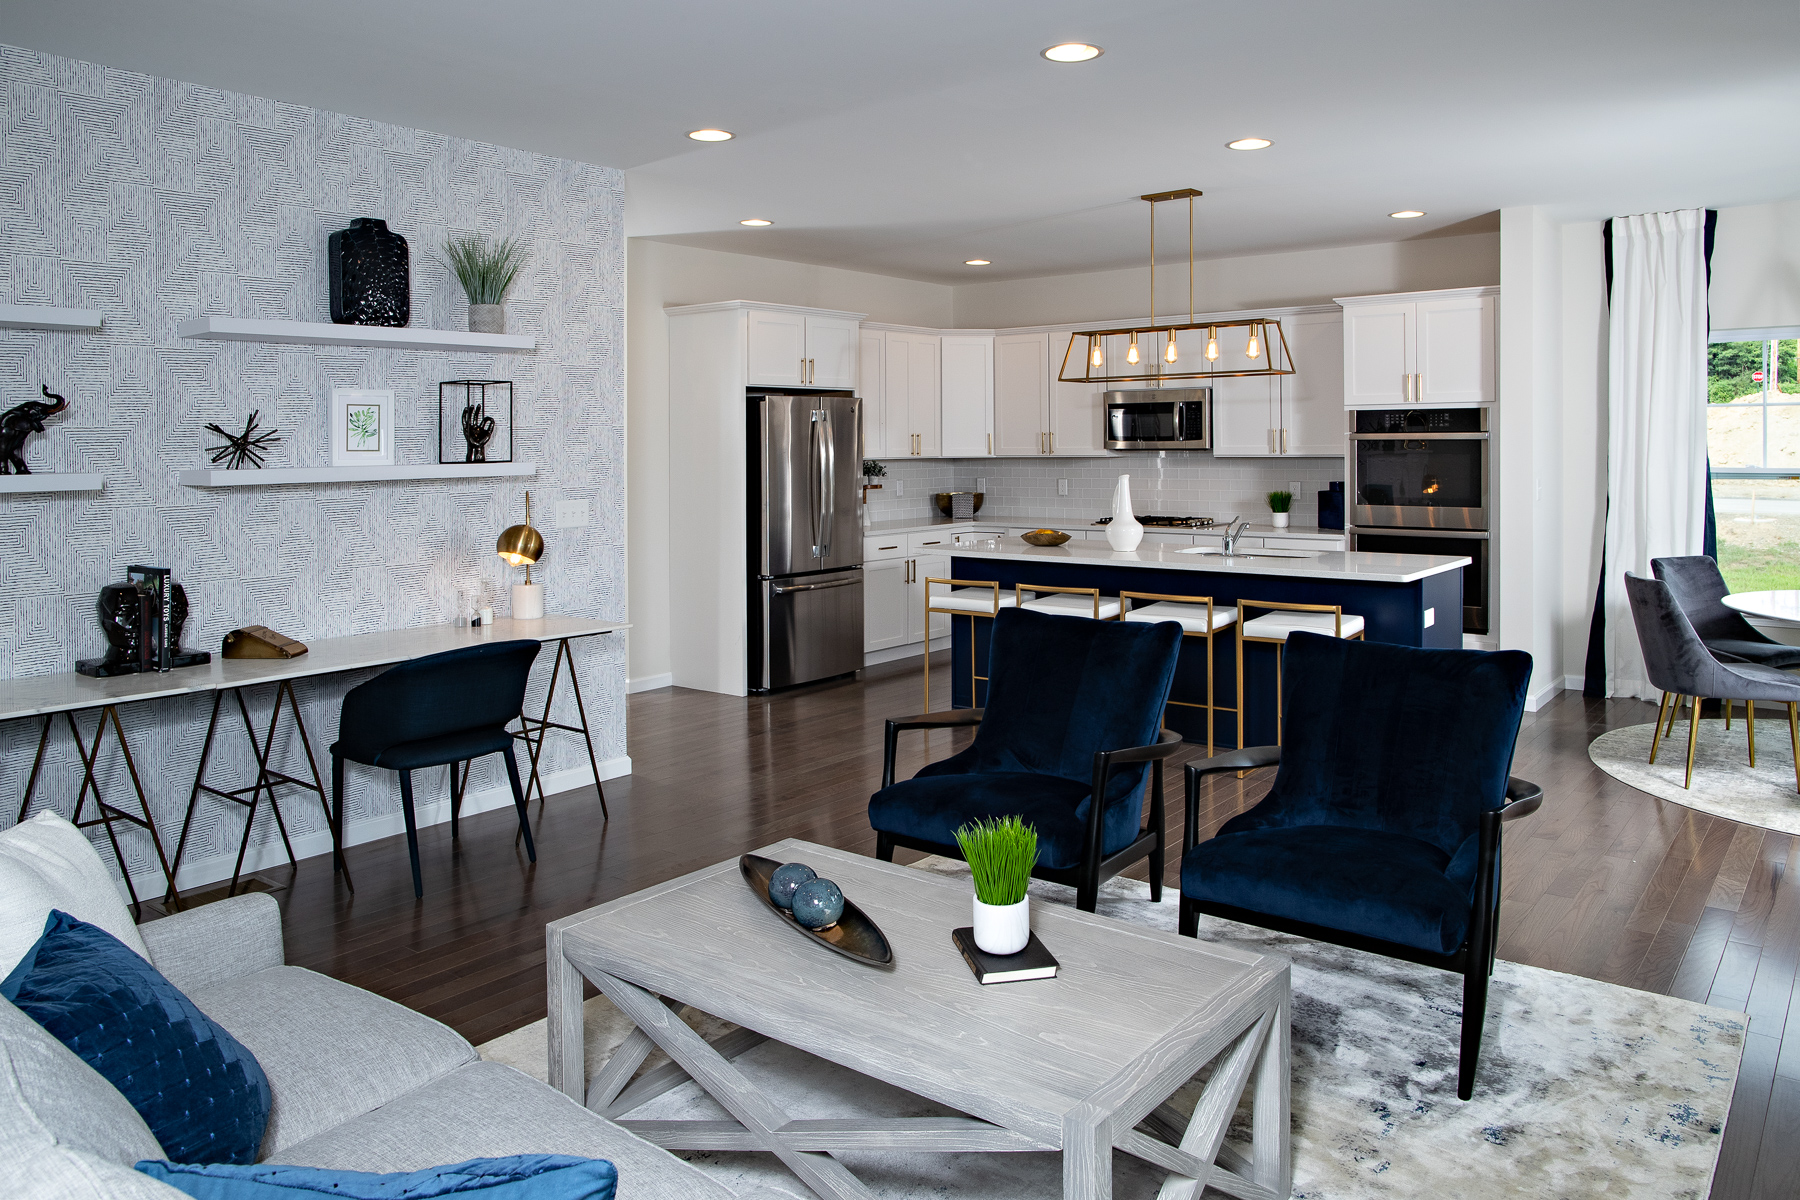 Open model new home in Upstate New York at The Glens, part of Sleight Farm's new home community in Dutchess County, Hudson Valley